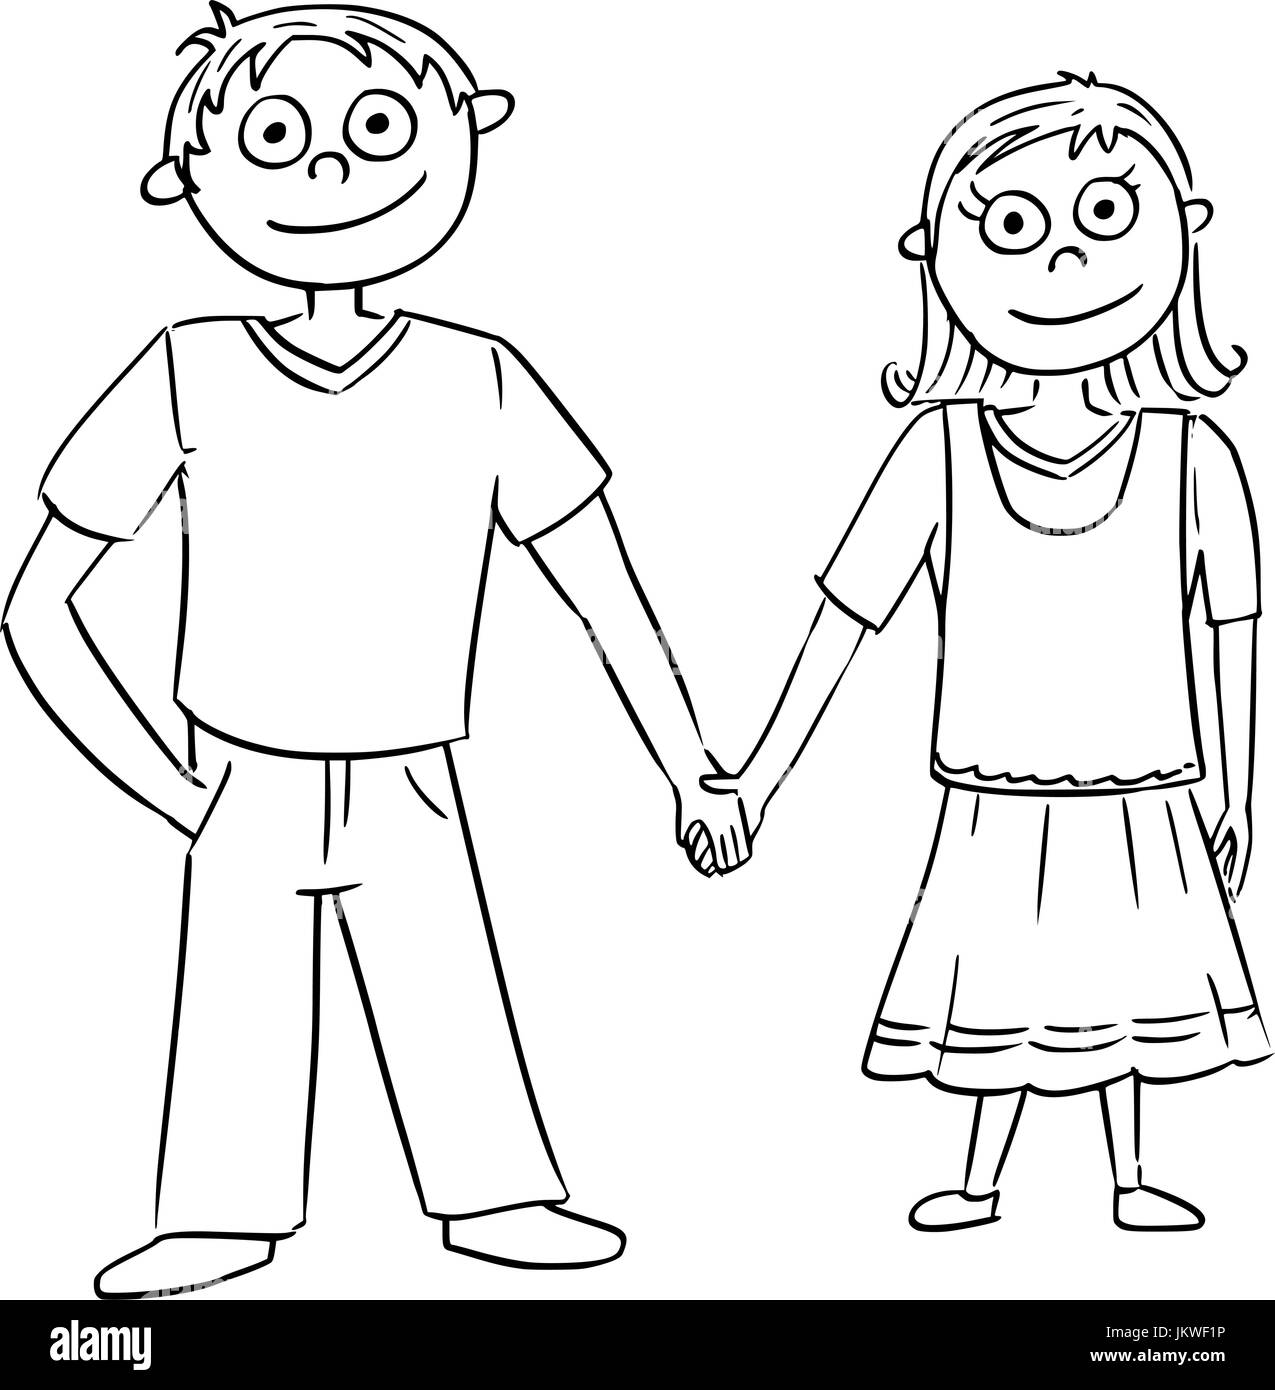 Hand Drawing Cartoon Vector Illustration Of Boy And Girl Or Young